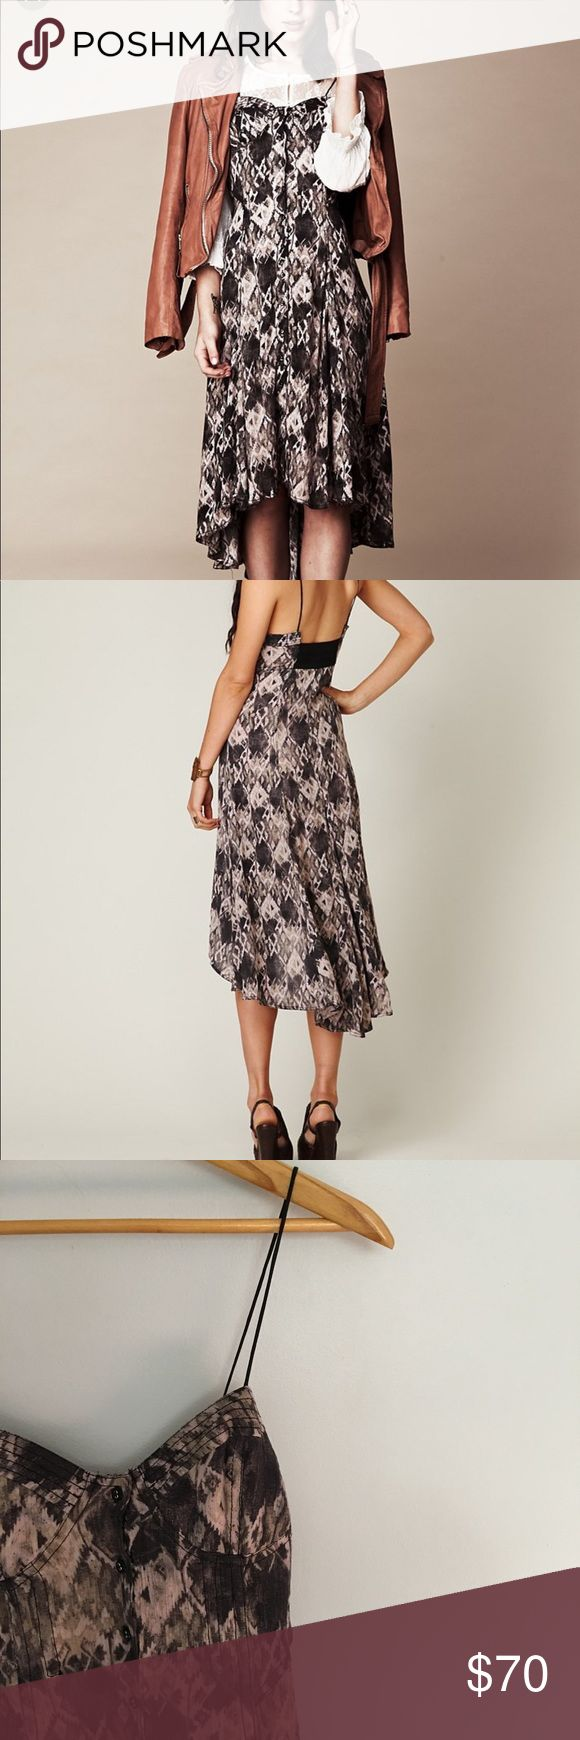 Free People New Romantics Tribal Maxi Dress Free People's New Romantics Tribal Button Down Dress. Perfect condition. Hangs a bit shorter in front. Free People Dresses Maxi